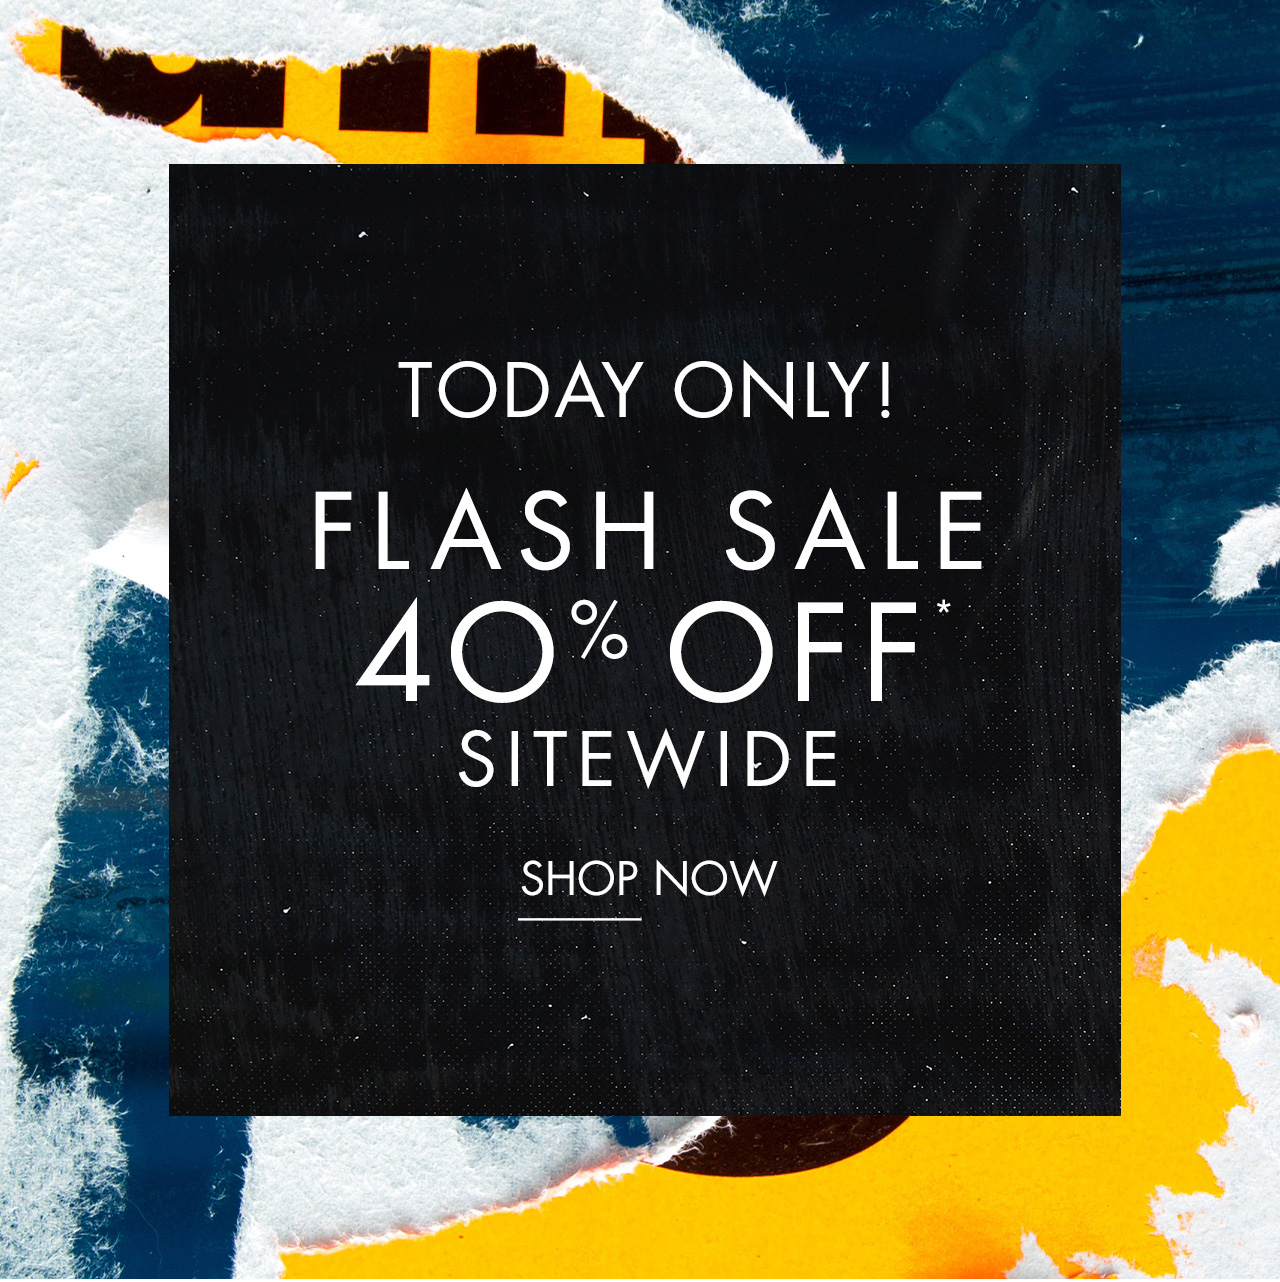 Today Only Flash Sale 40% Off Sitewide - Shop Now